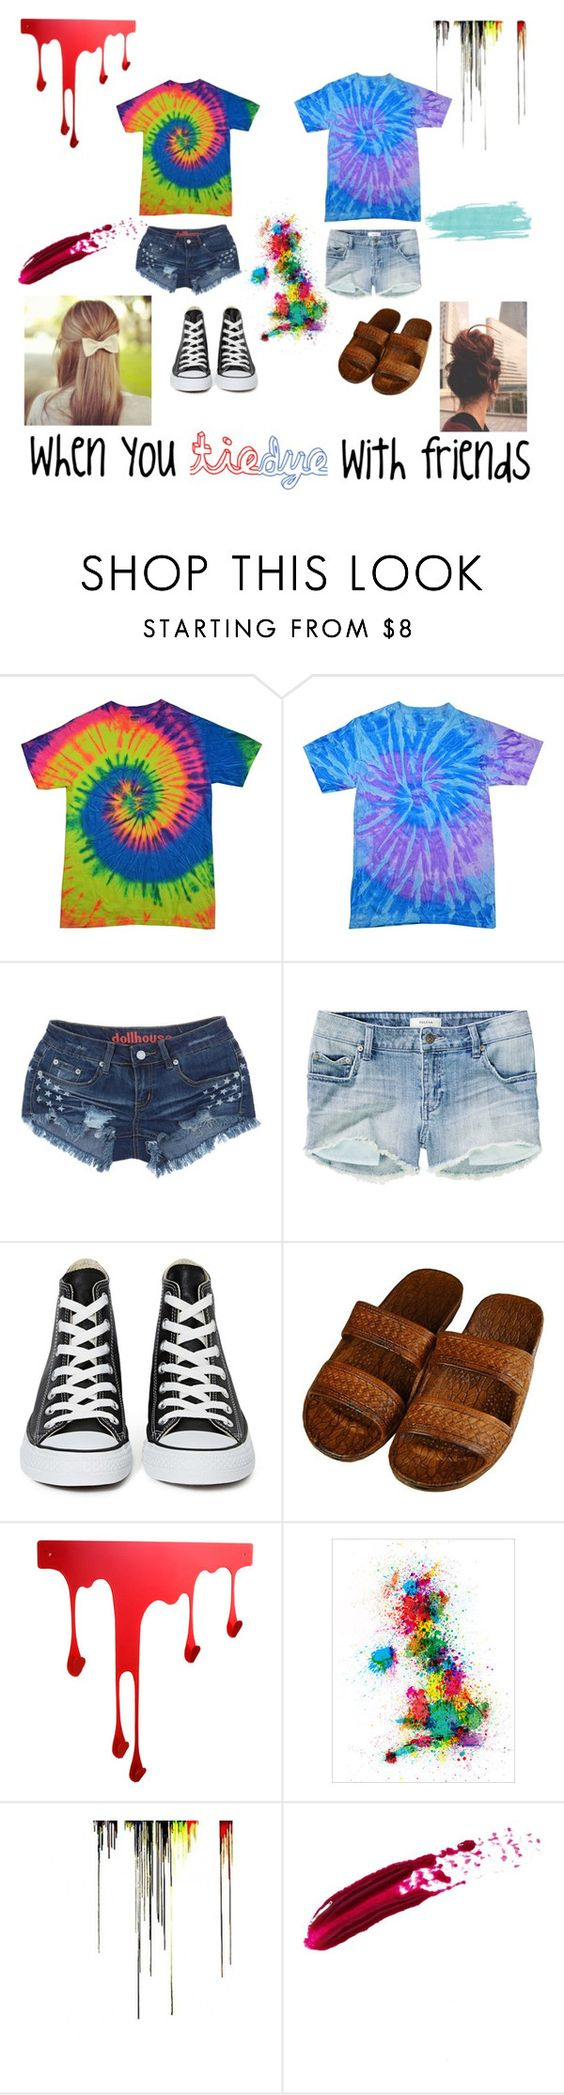 """tie-dye with friends *3*"" by clairediver ❤ liked on Polyvore featuring Talula, Converse and Pulpo"